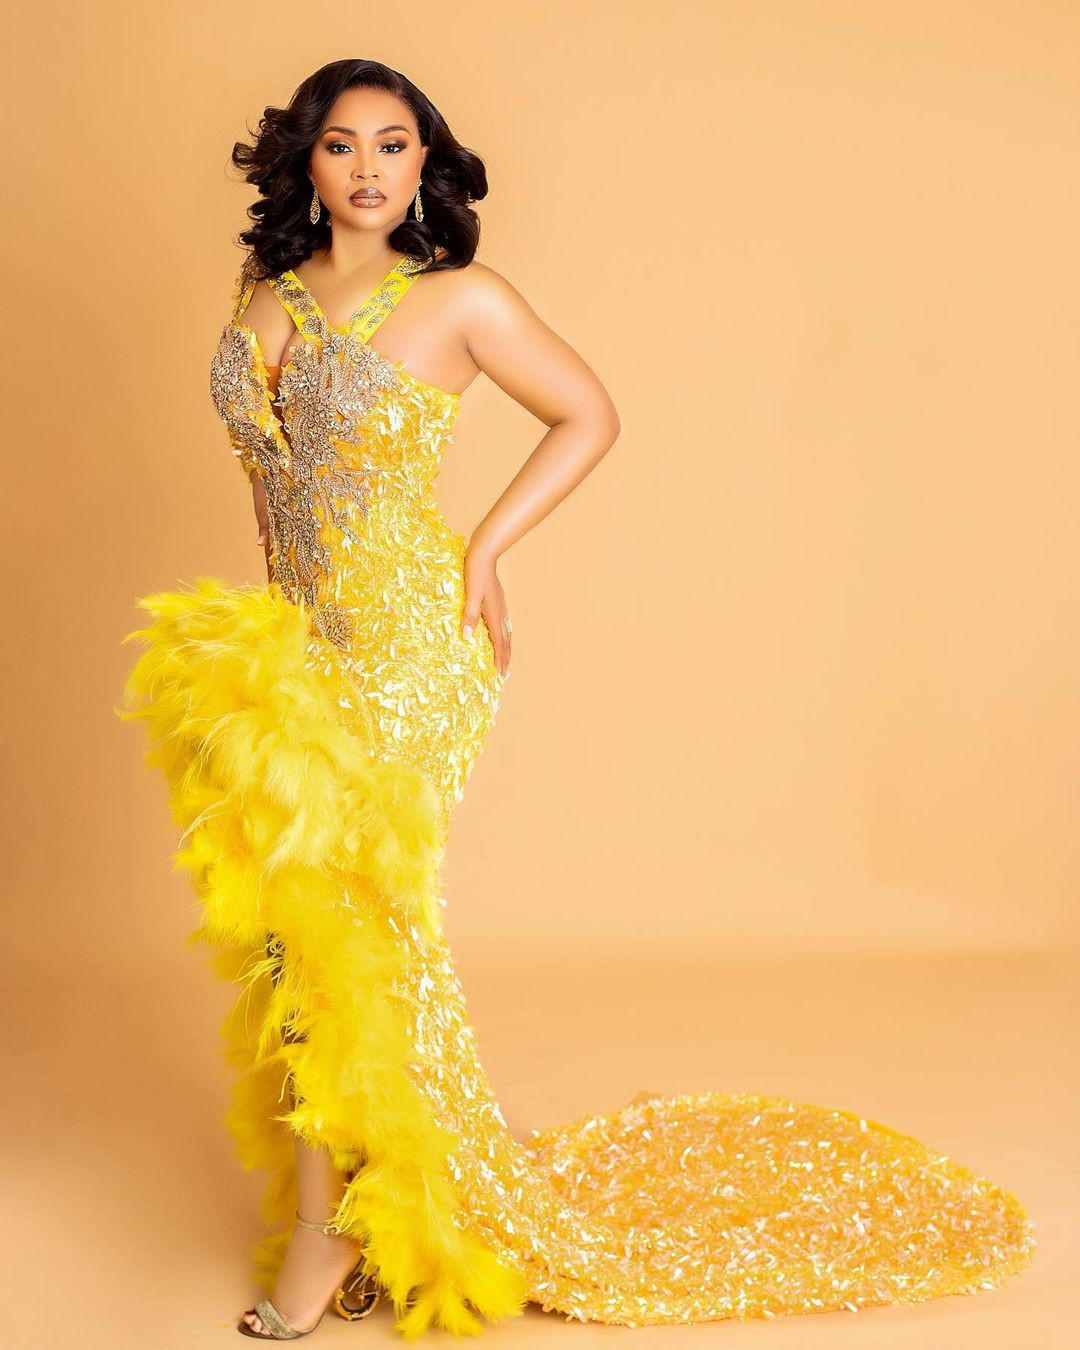 Mercy Aigbe shares stunning new photos as she turns 43